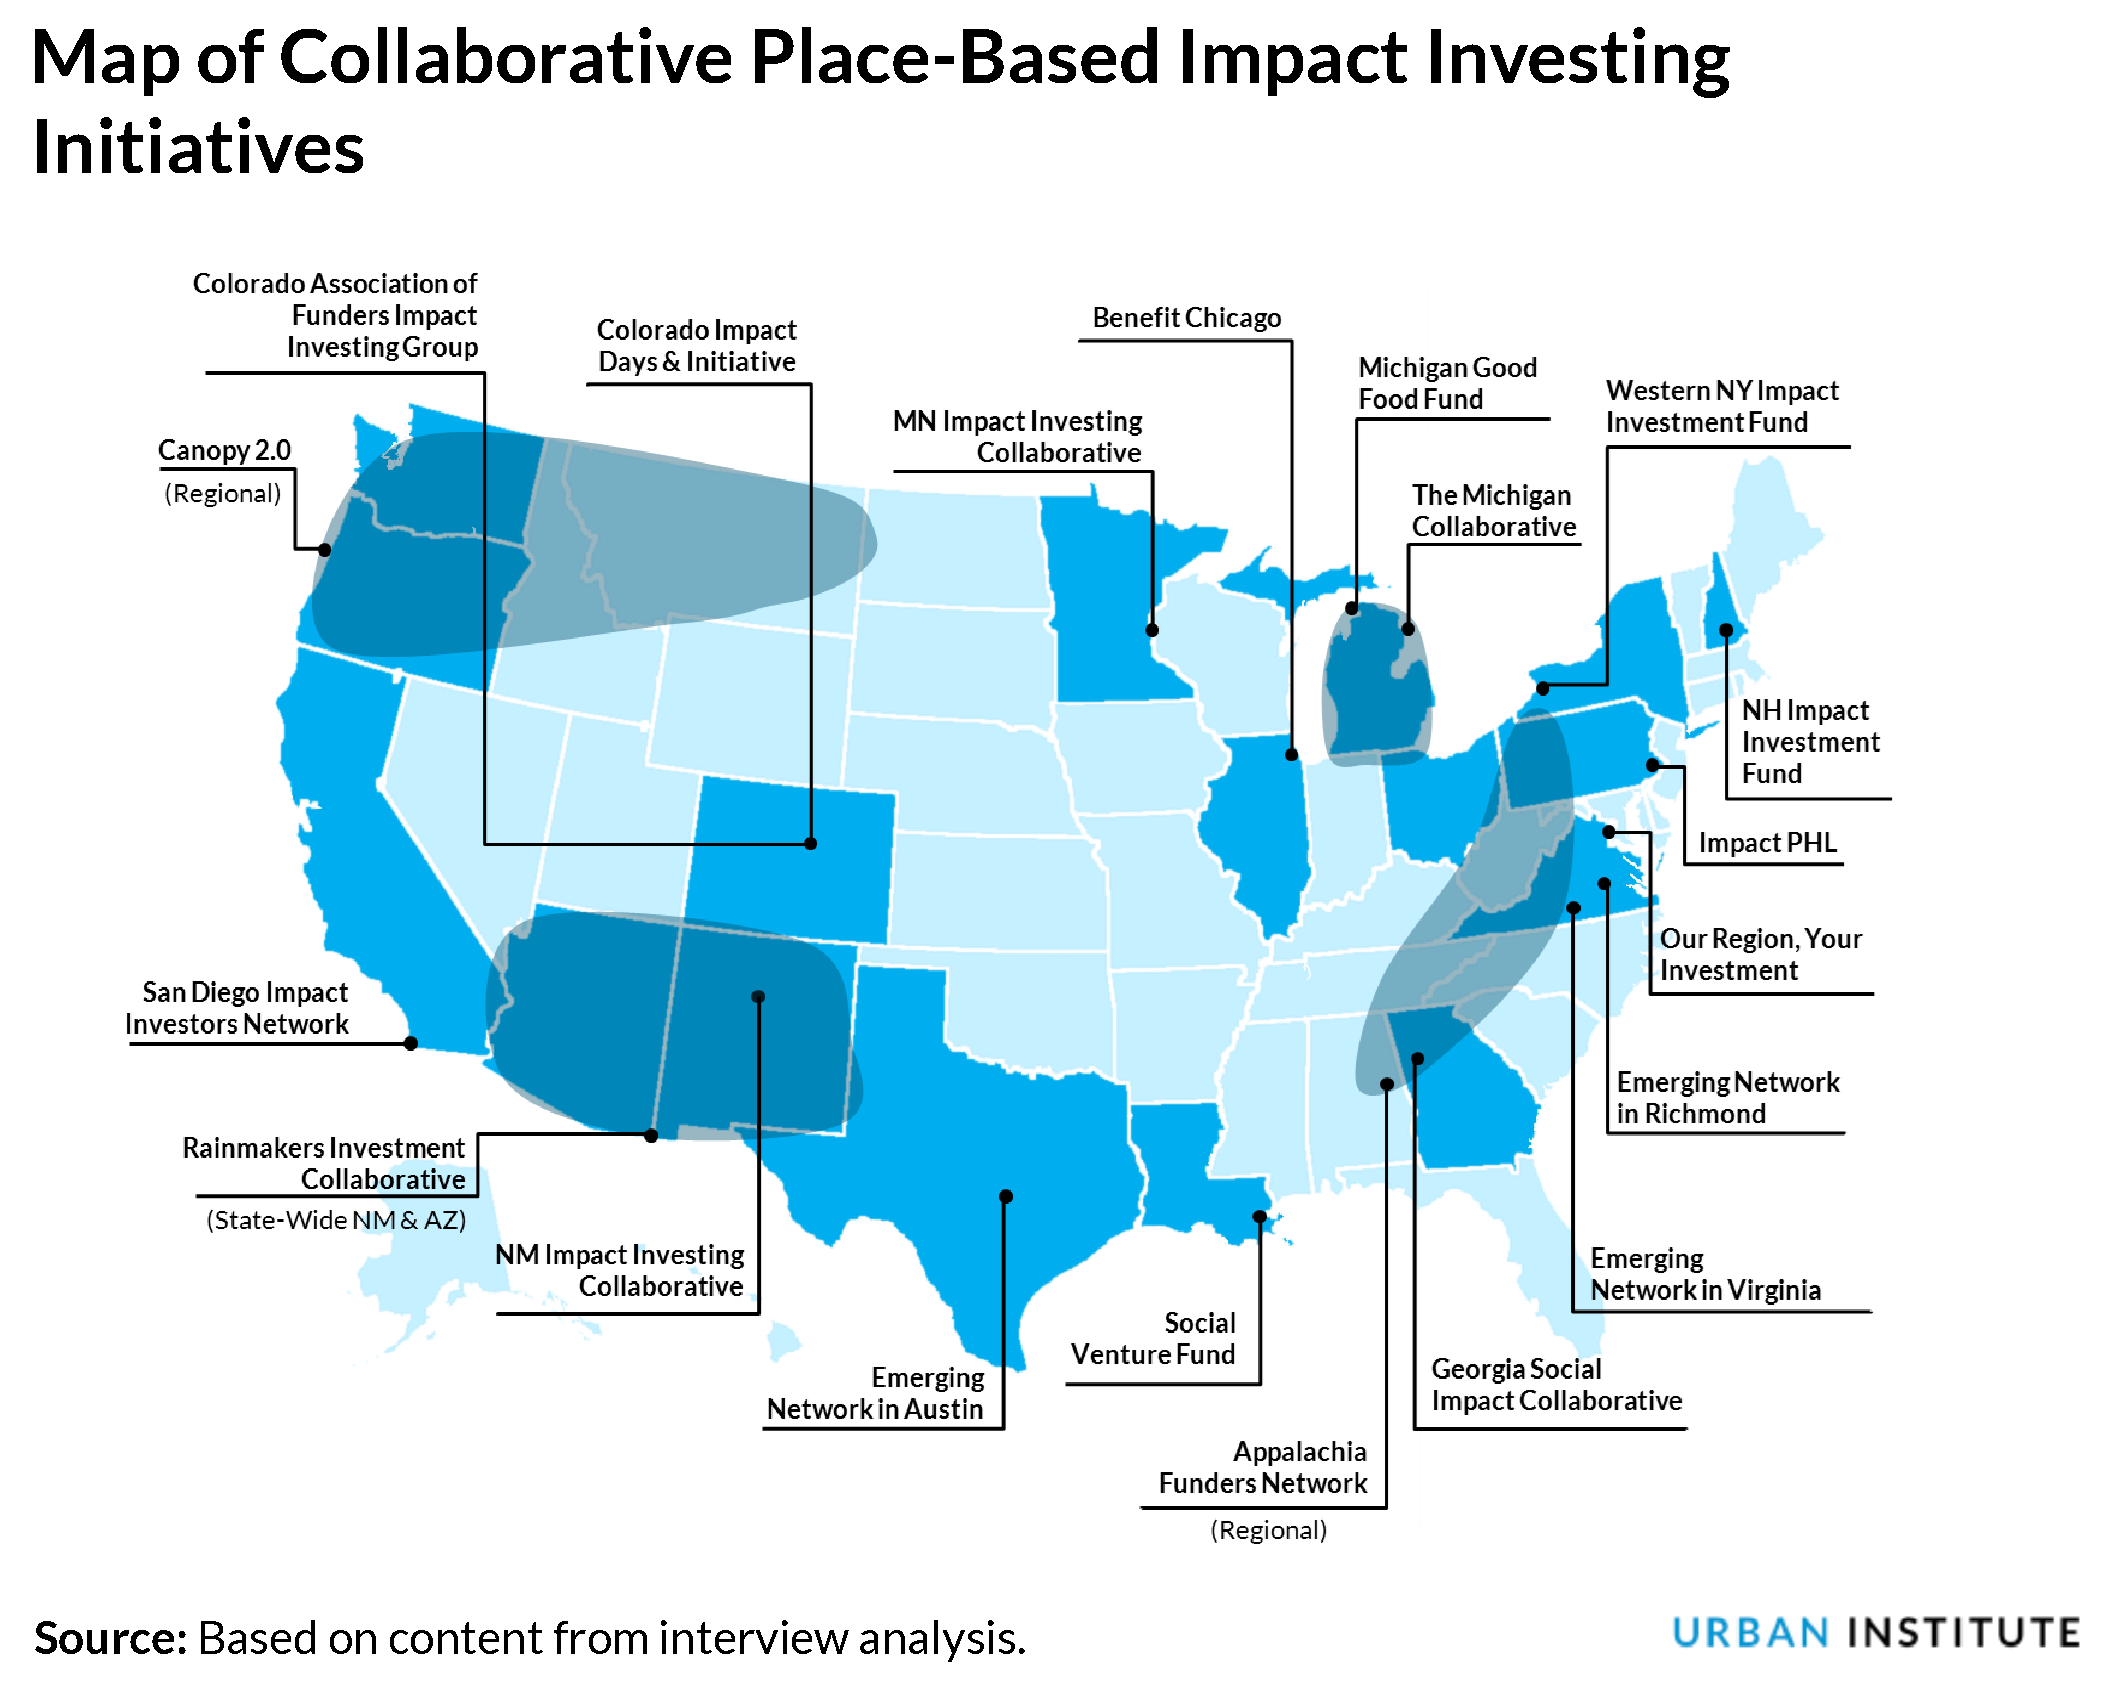 map of collaborative initiatives in place-based impact investing